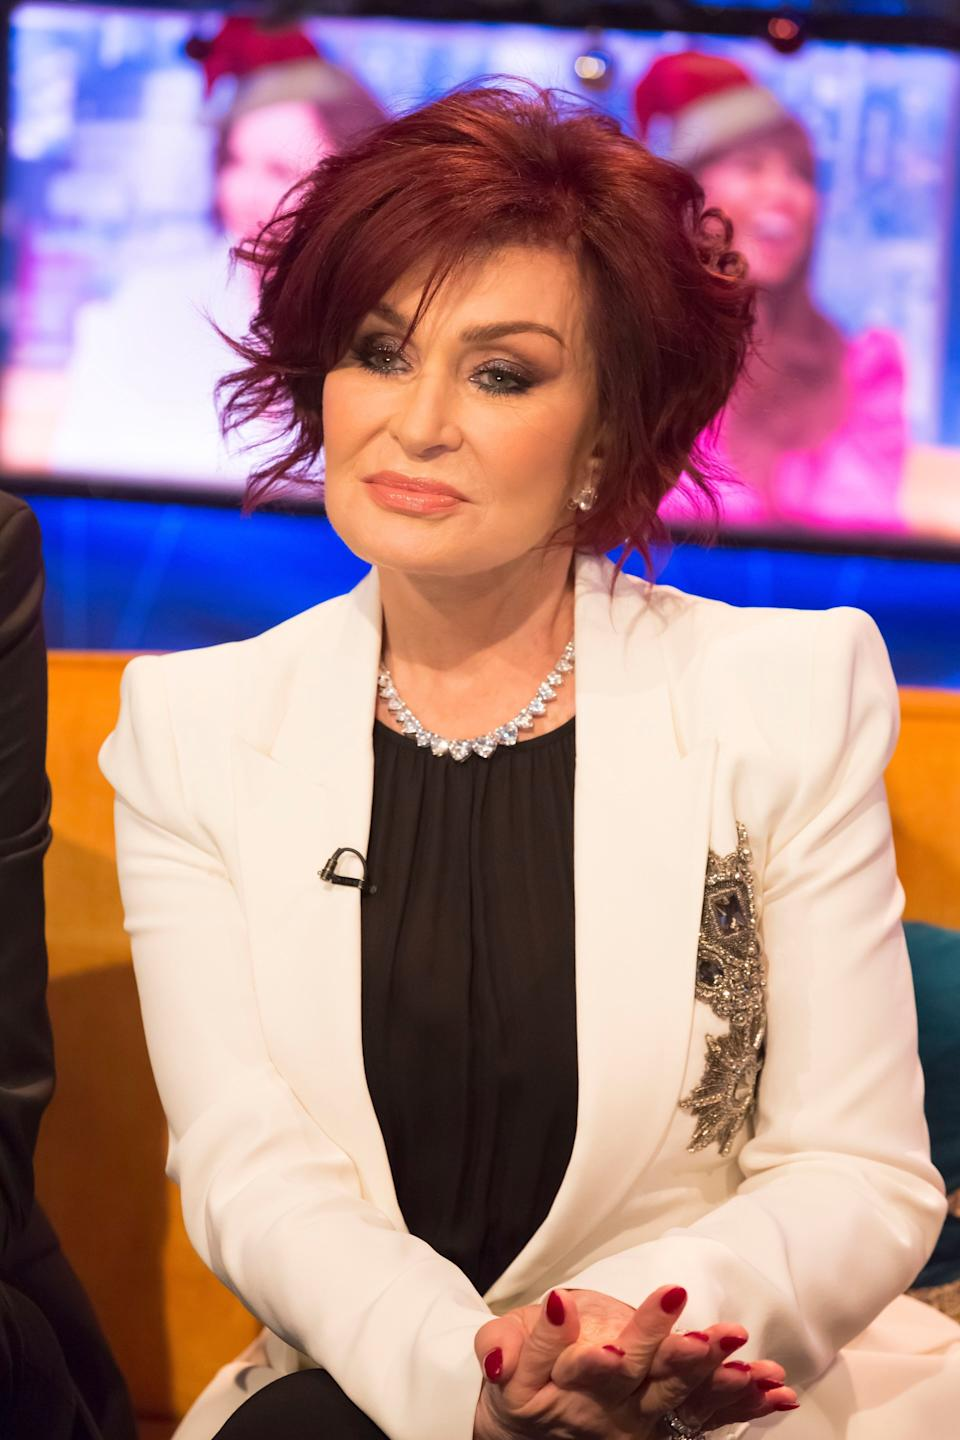 Sharon Osbourne appearing on Jonathan Ross' talk show last year (Photo: Brian J Ritchie/Hotsauce/Shutterstock)